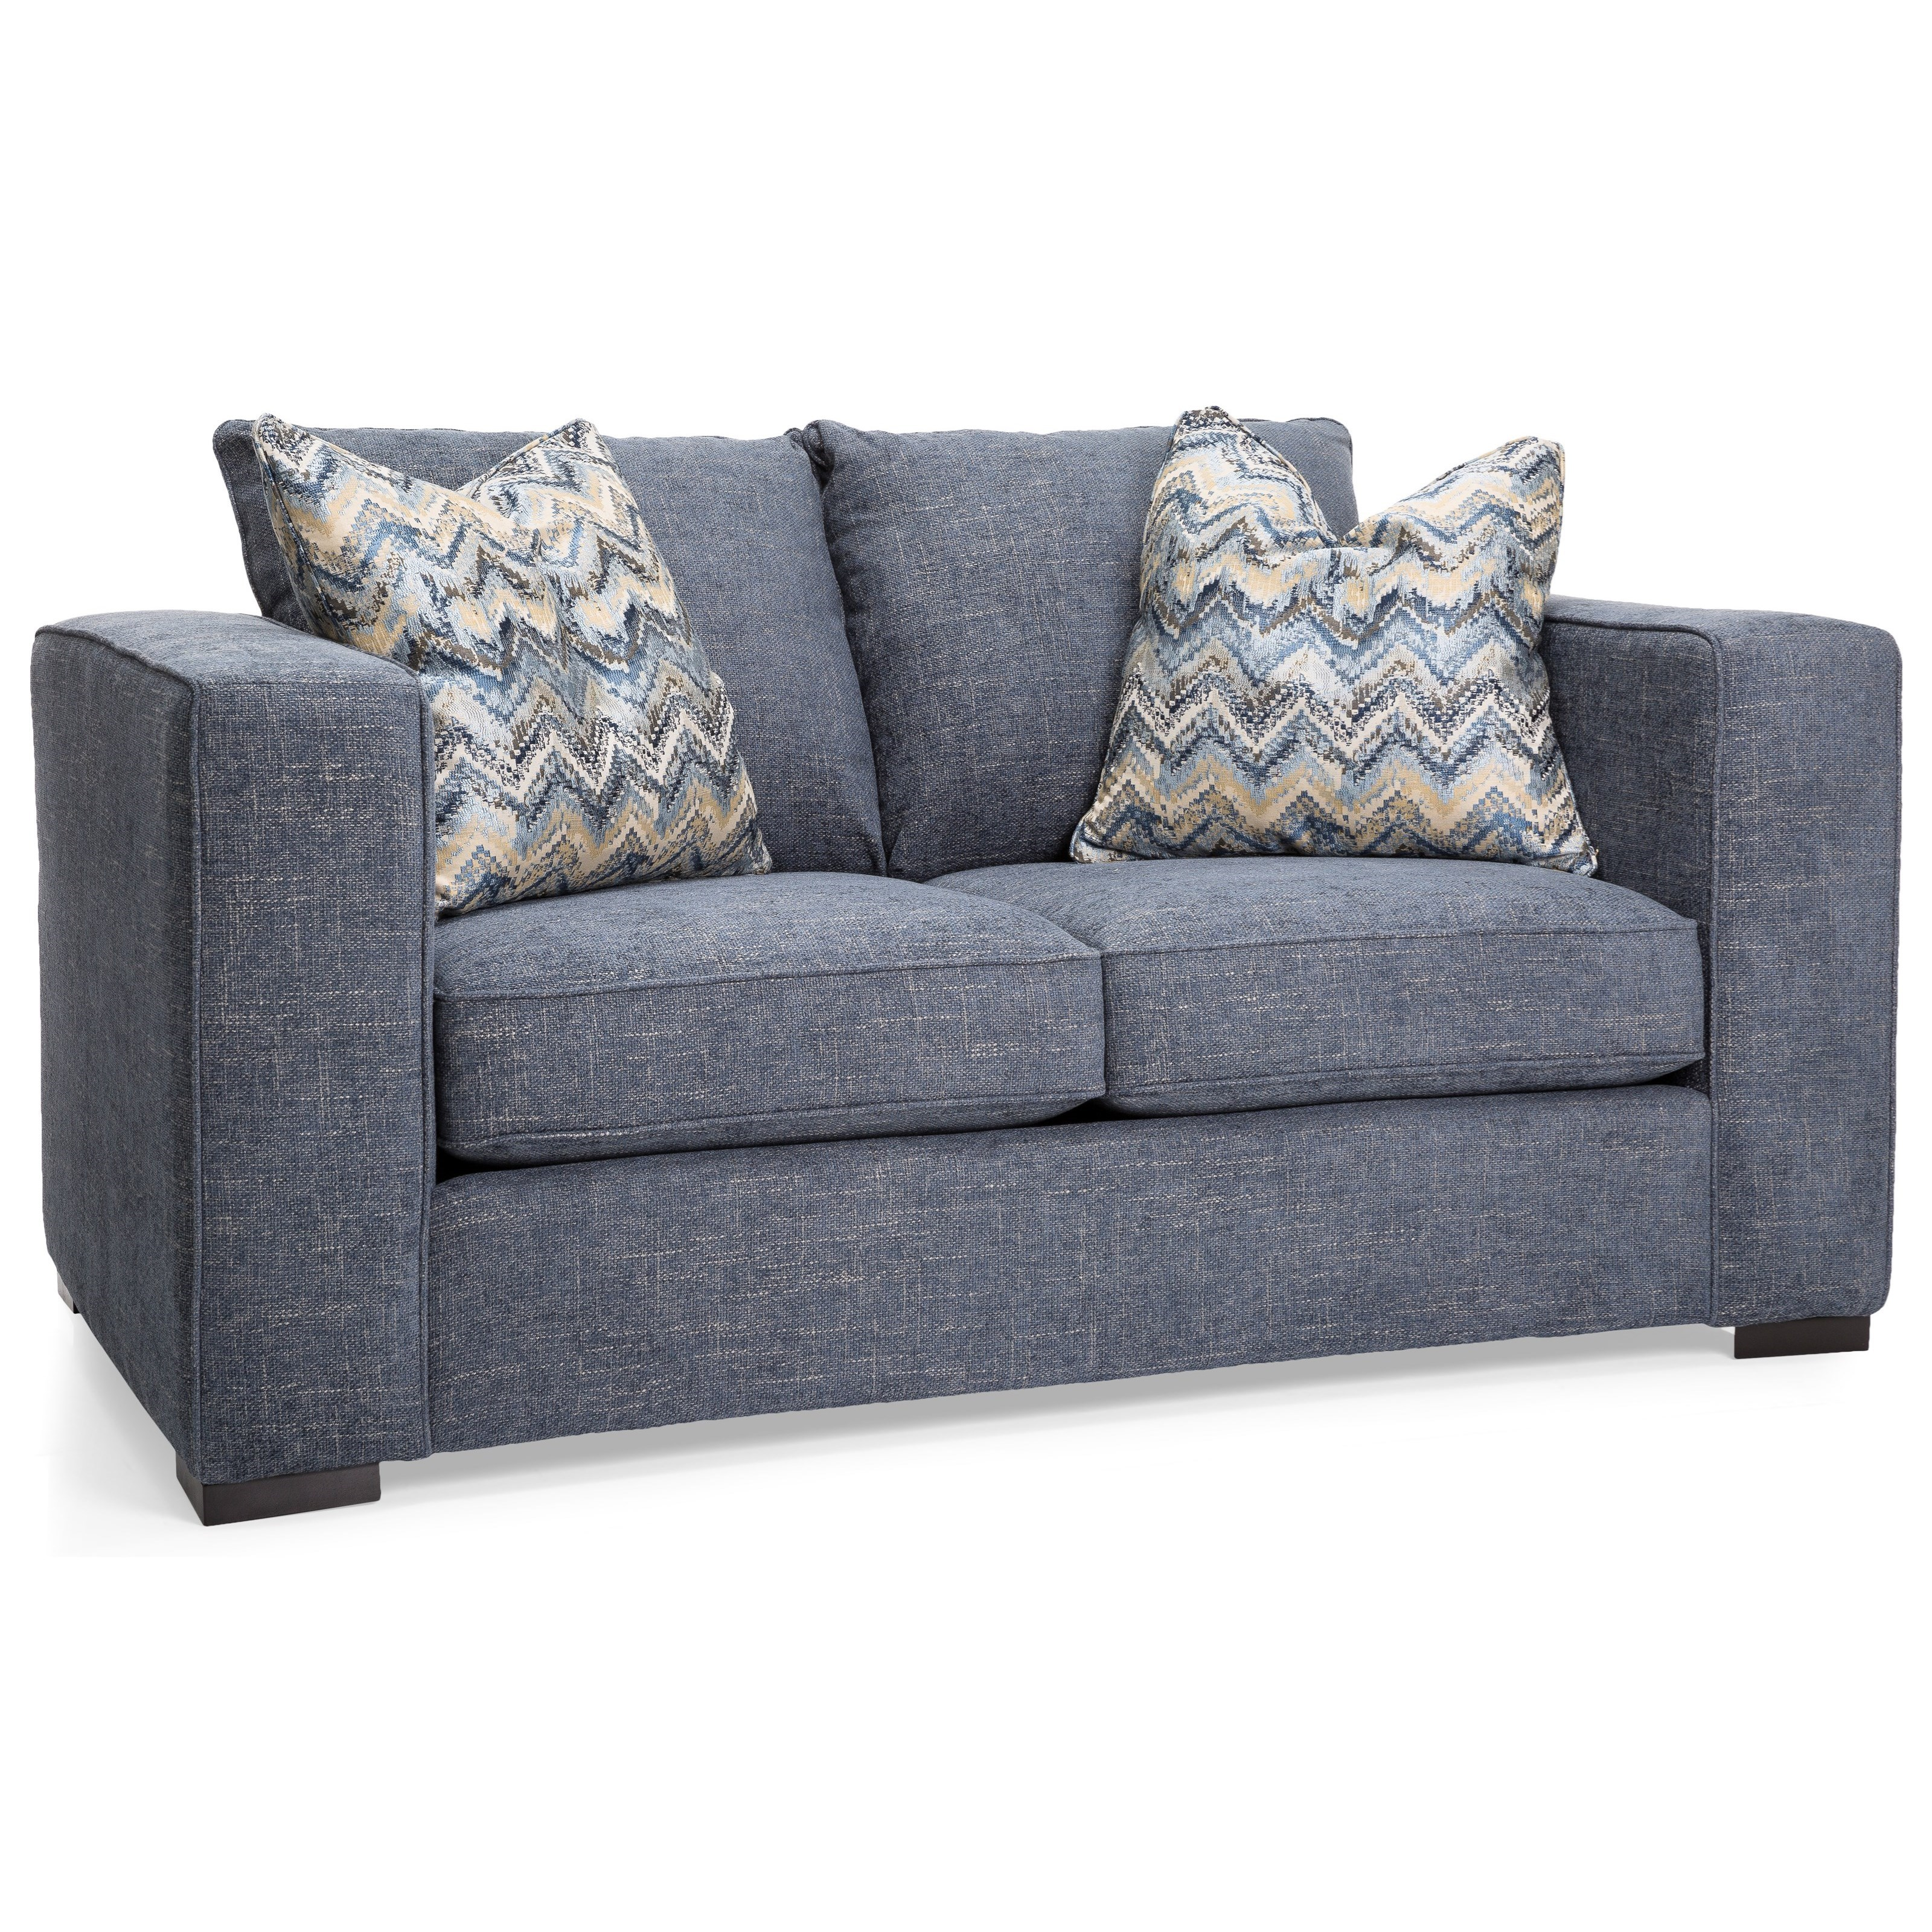 2900 Loveseat by Decor-Rest at Rooms for Less